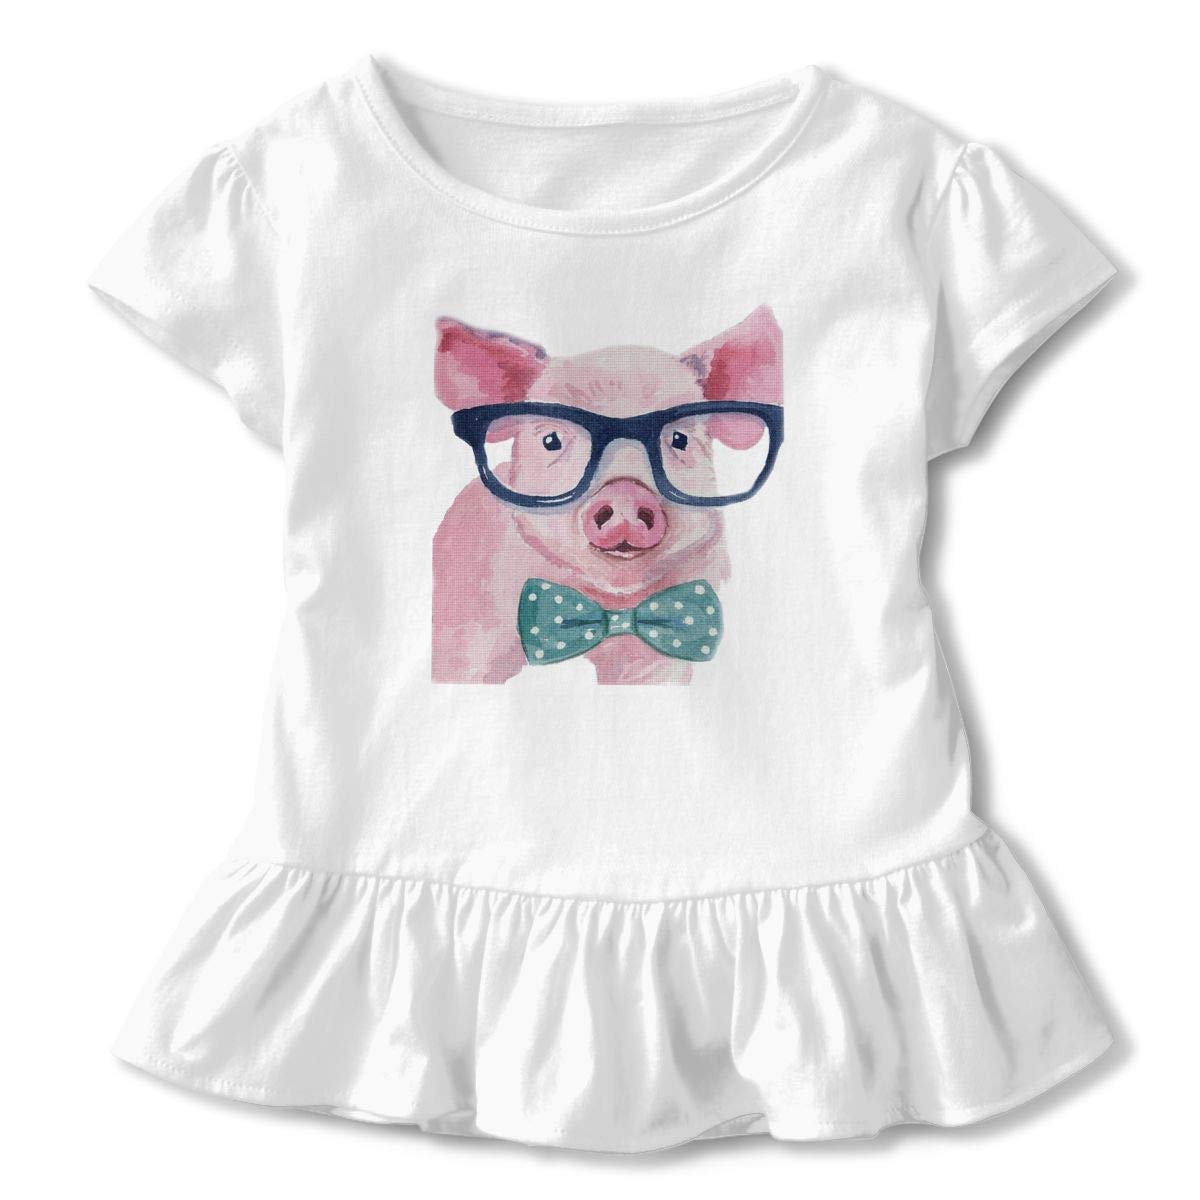 Watercolor Pig with Sunglass and Bow Tie Toddler Baby Girls Short Sleeve Ruffle T-Shirt